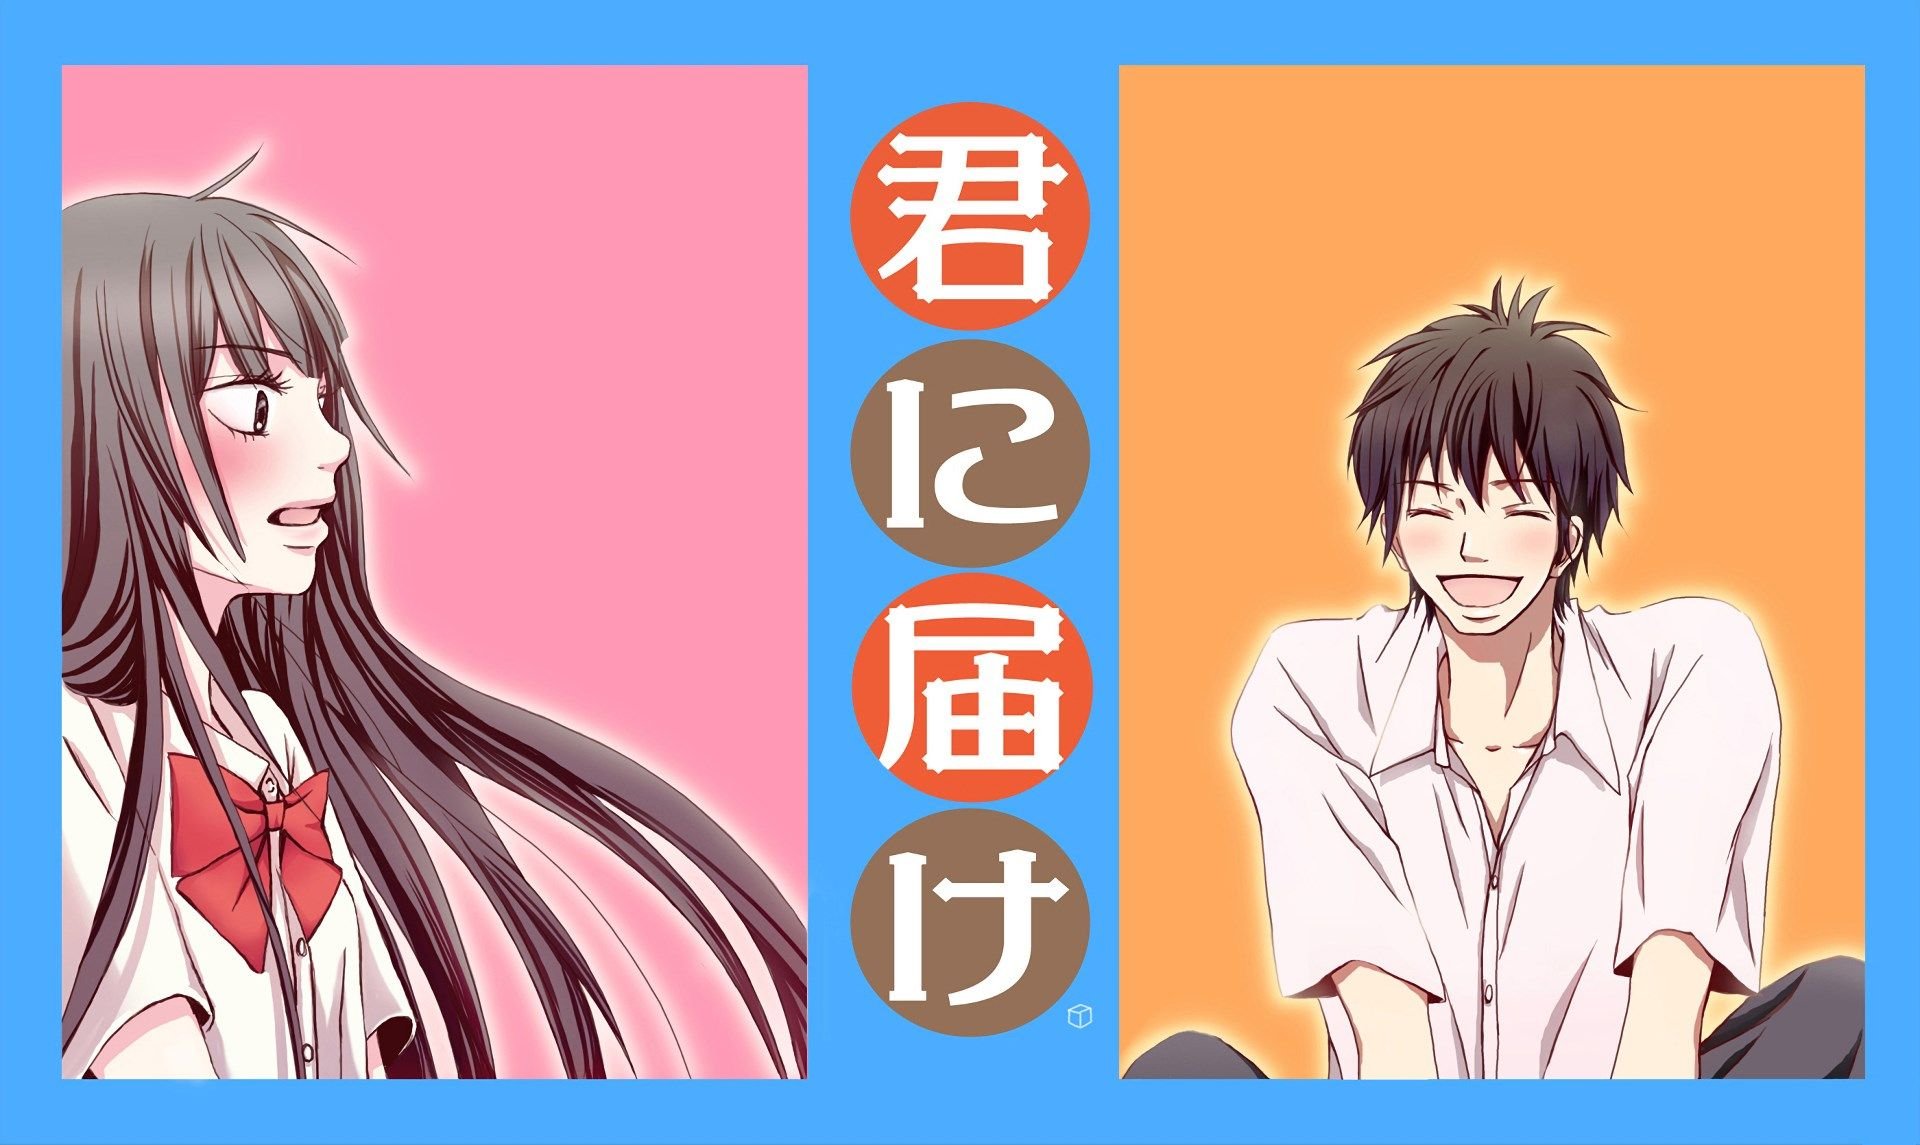 kimi ni todoke Background hd 1920x1145 Kimi ni todoke